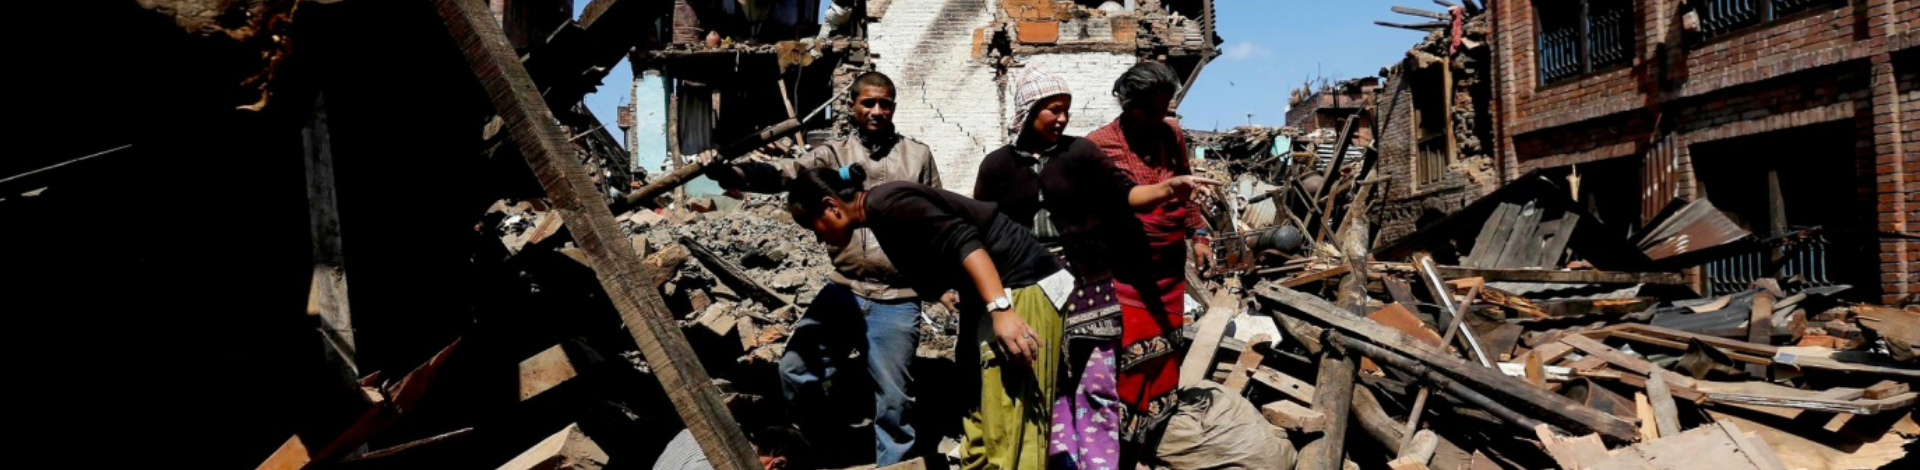 Women and men standing on top of rubble where kathamandu once stood, following Nepal earthquake in 2015.